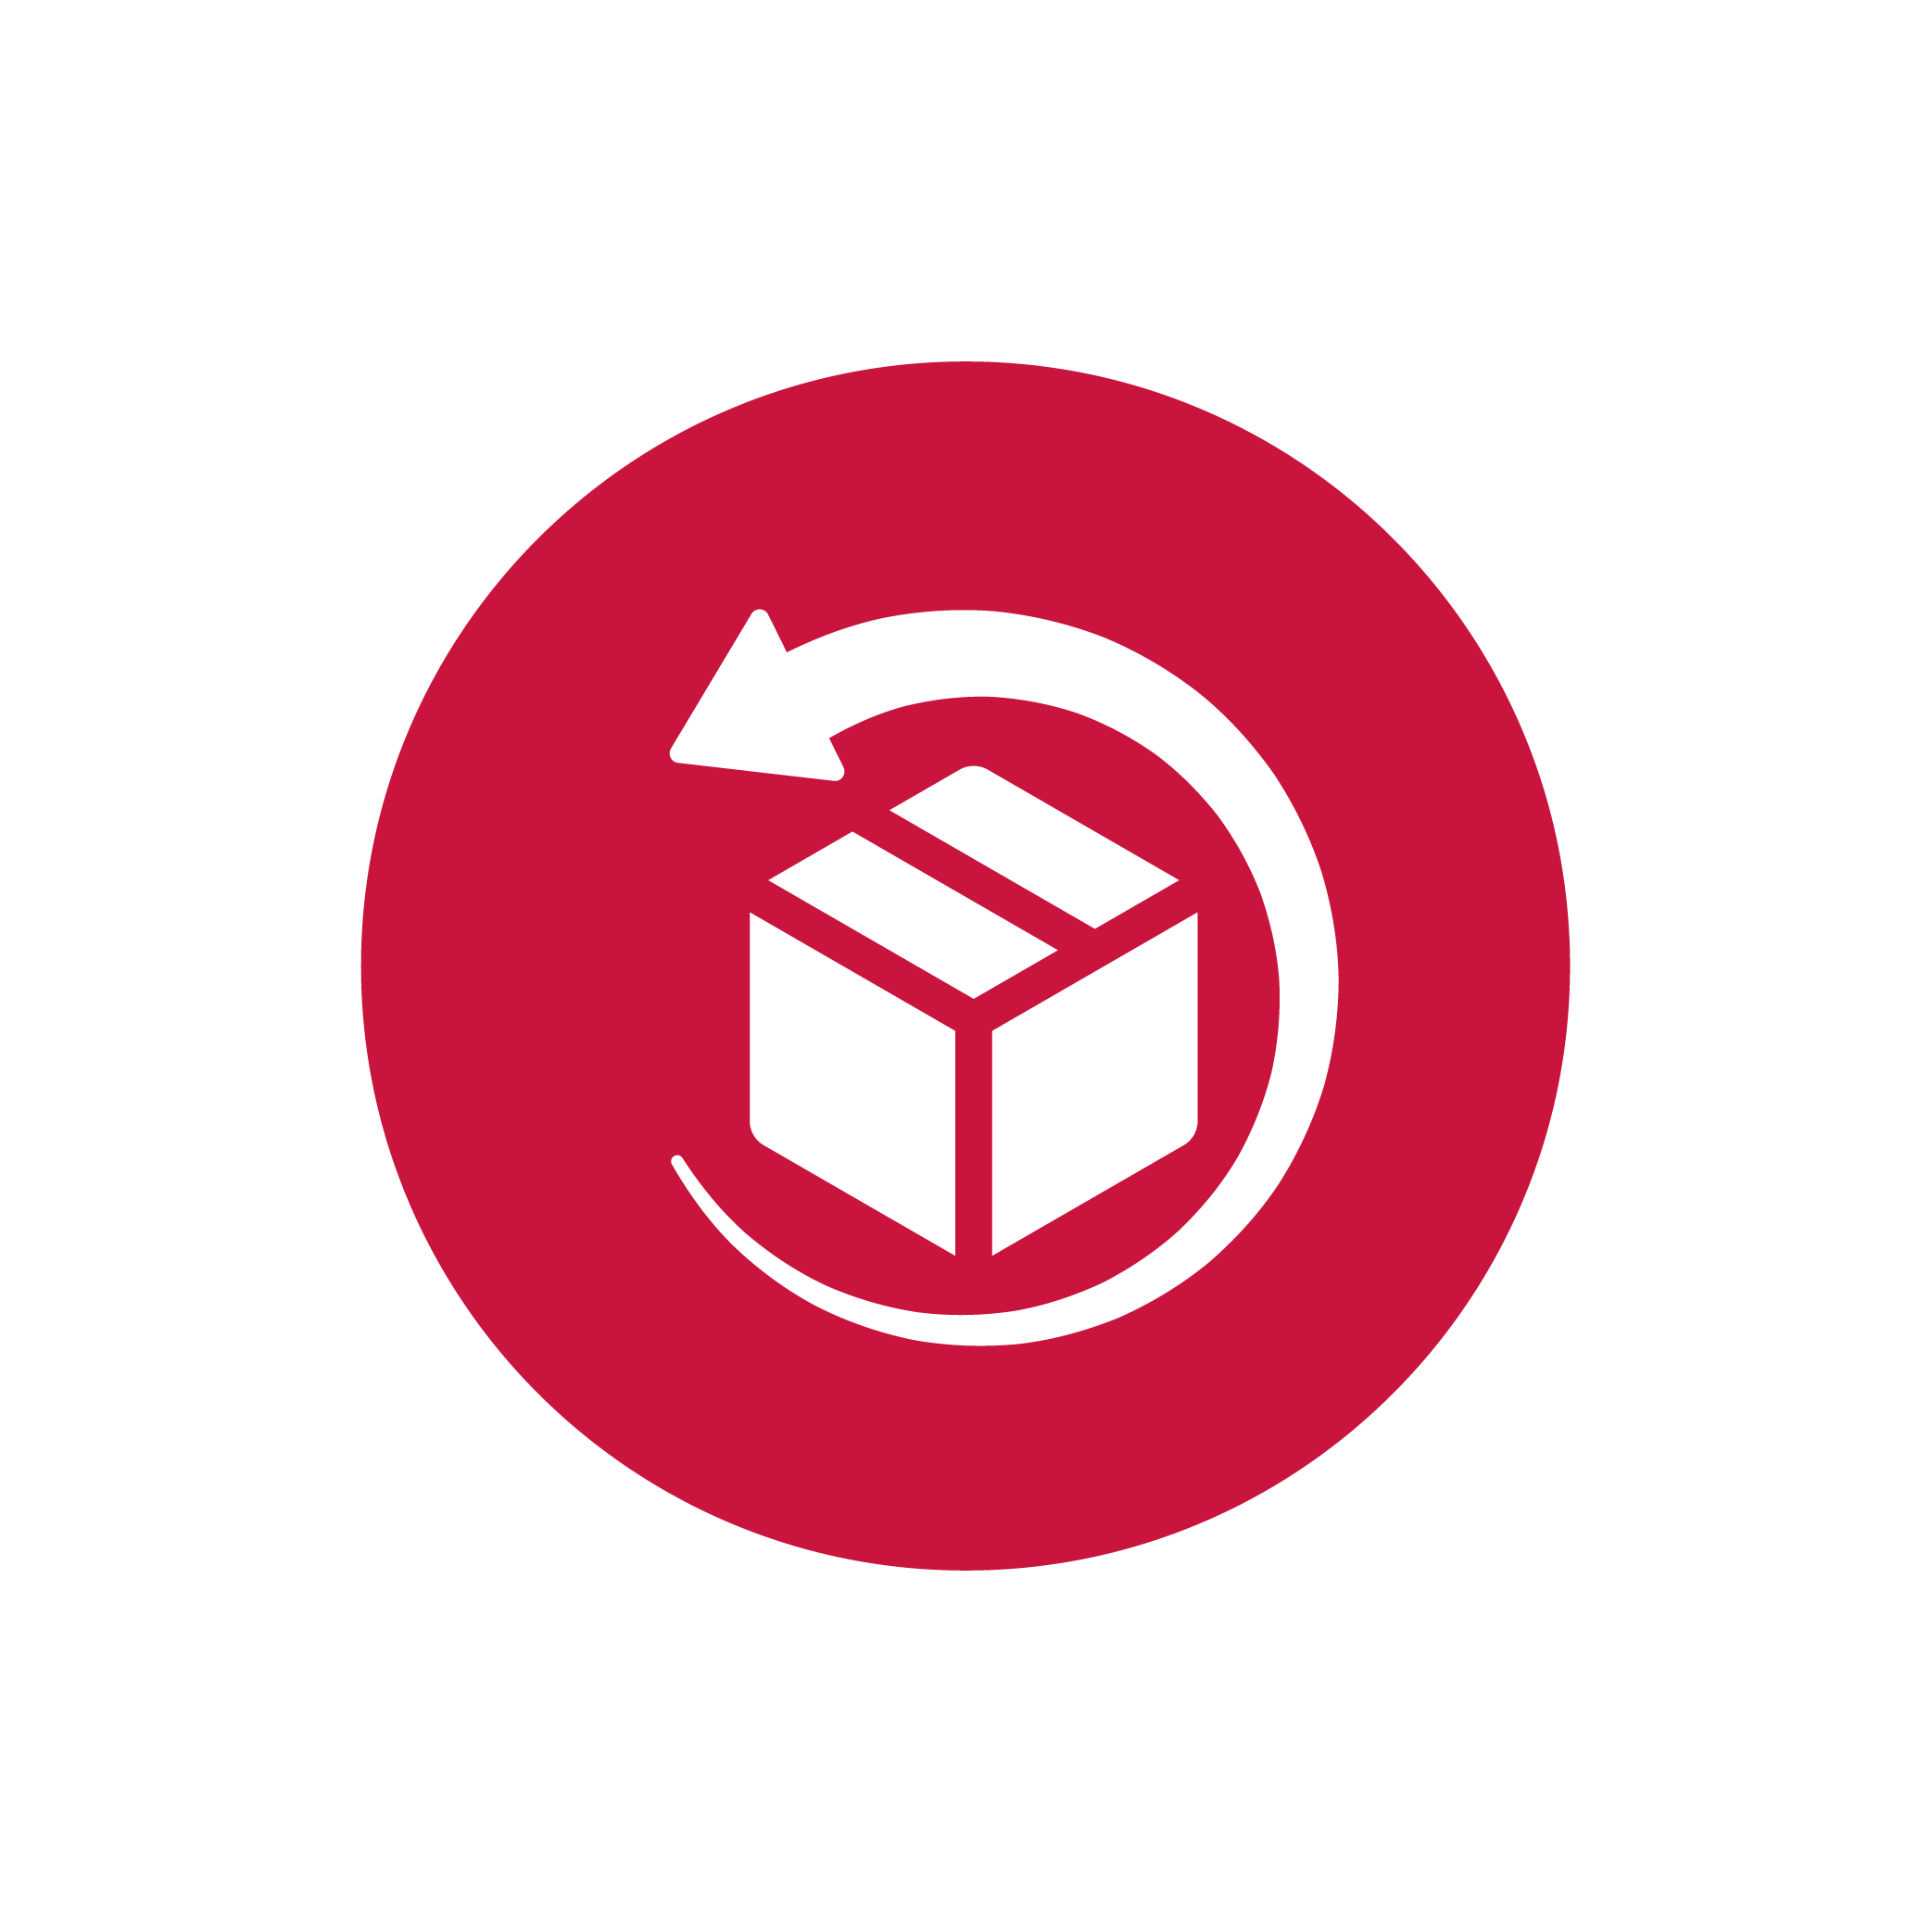 60-Day Return Policy Icon